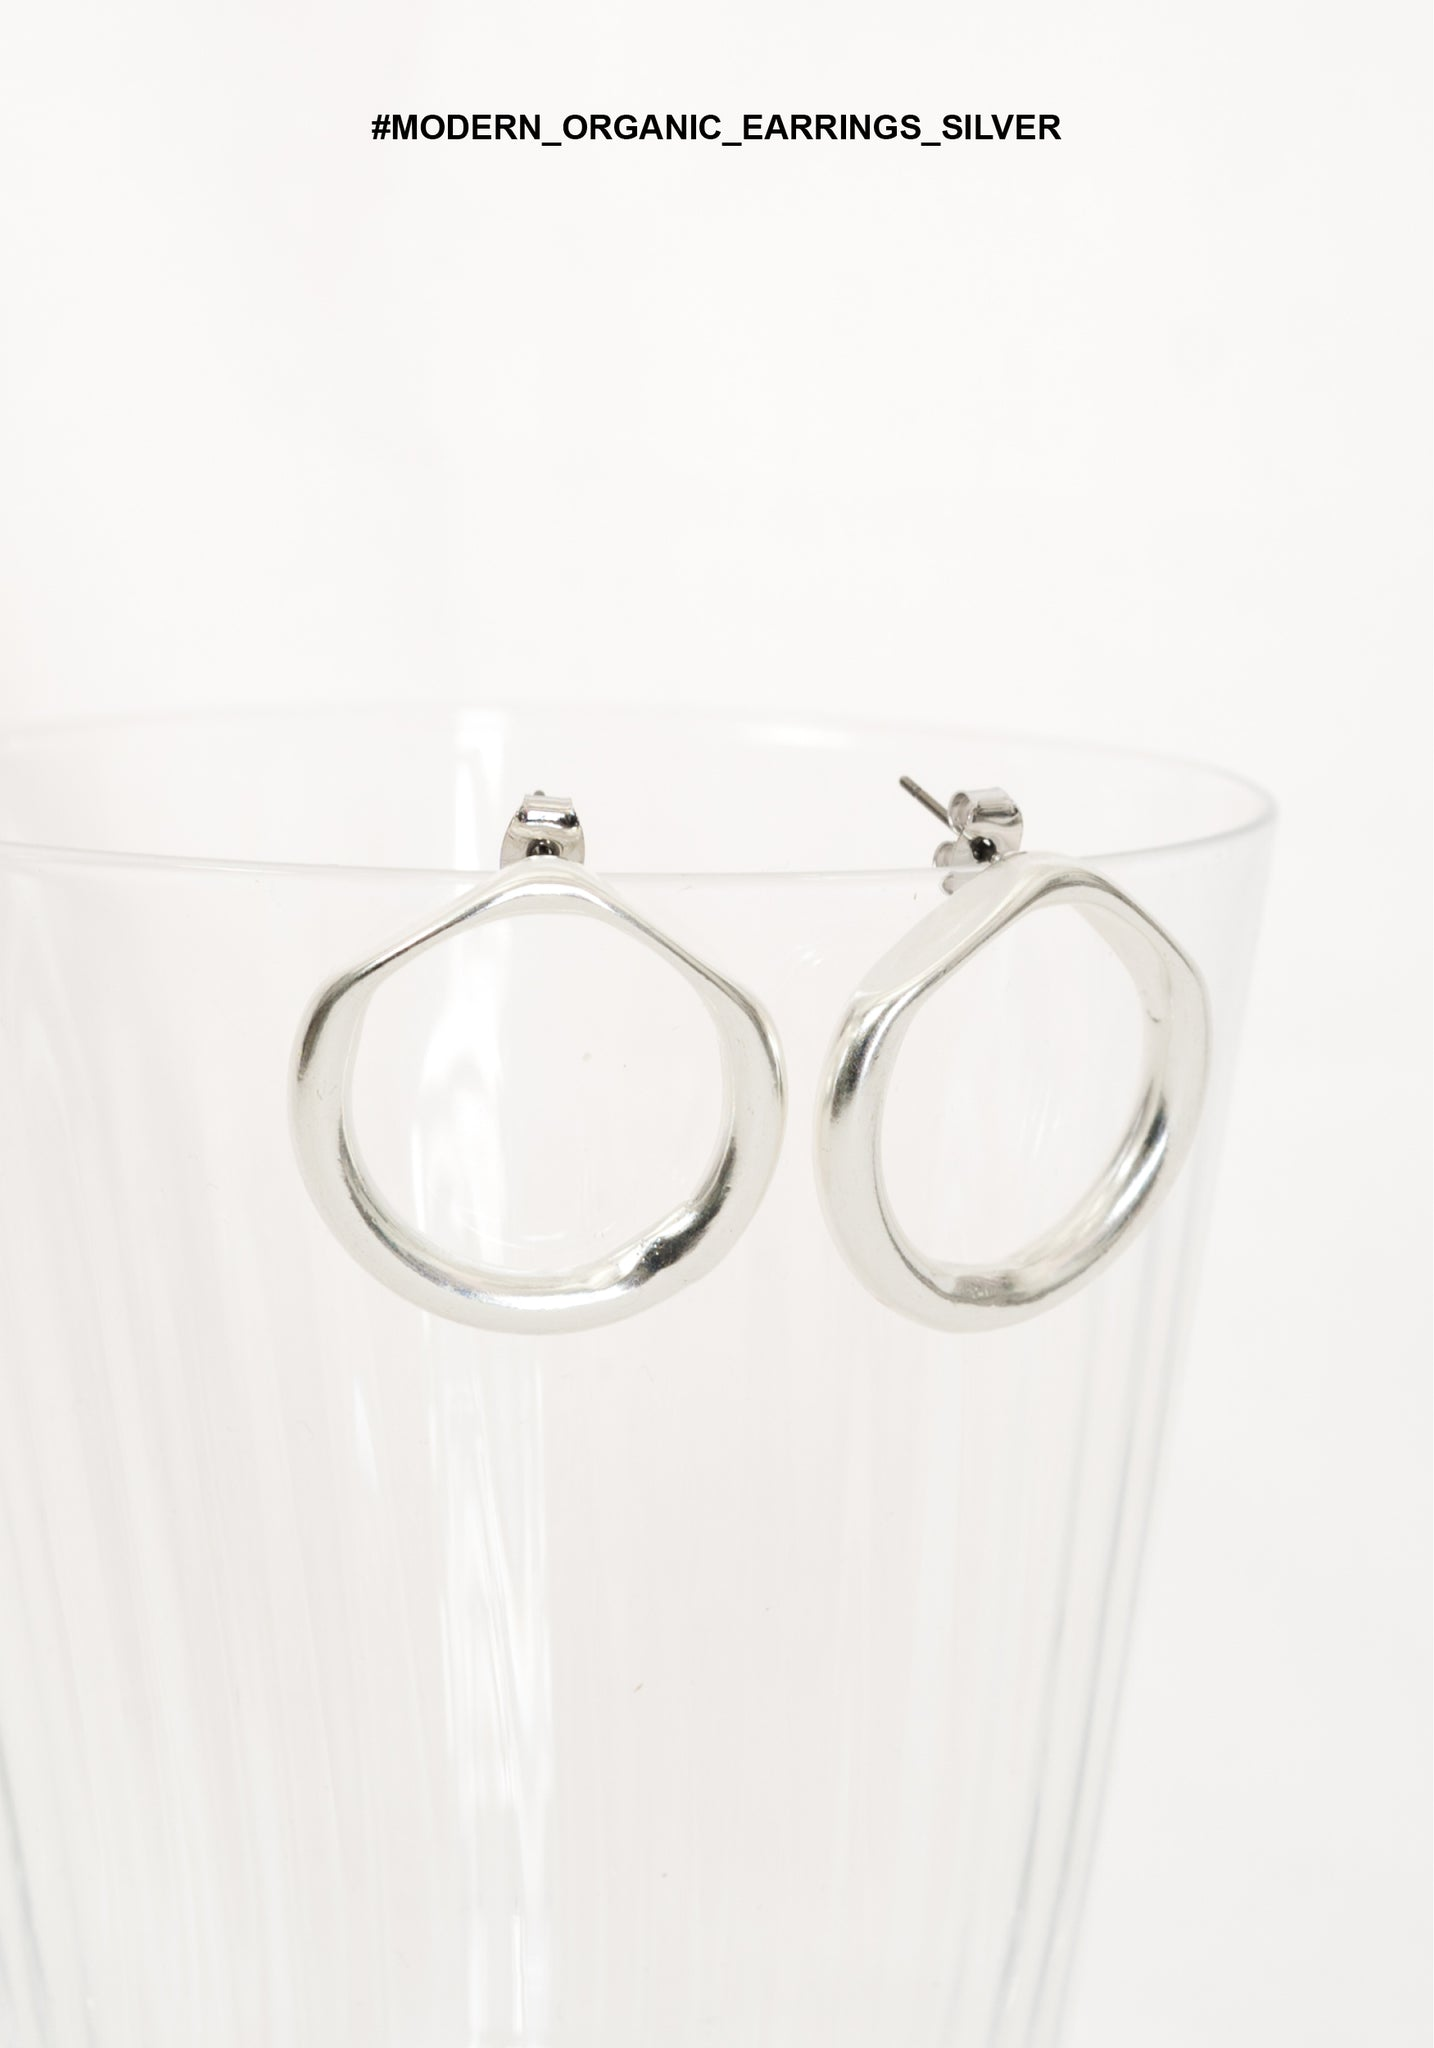 Modern Organic Earrings Silver - whoami